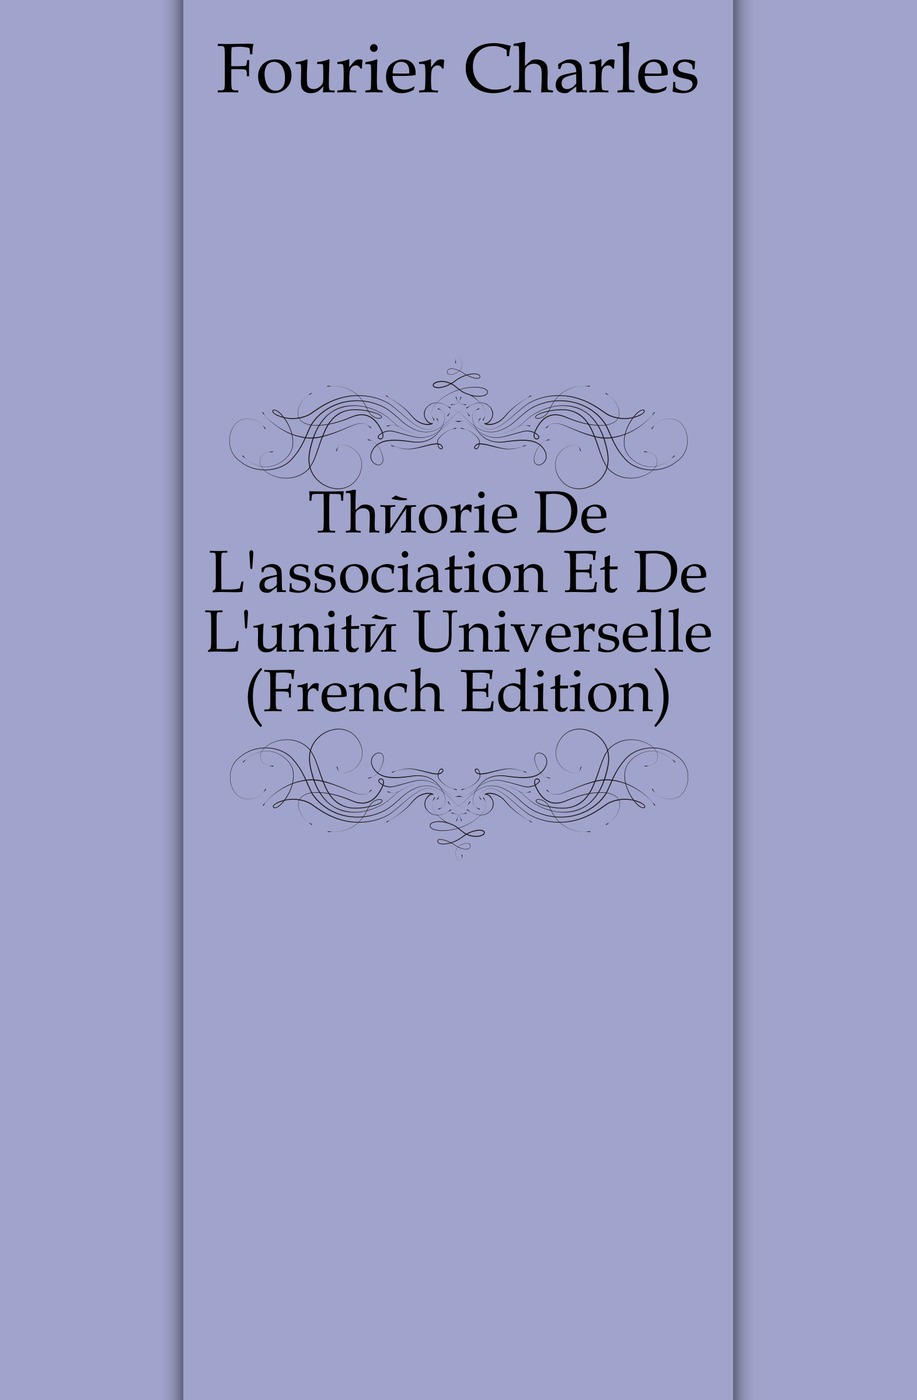 Fourier Charles Theorie De L'association Et De L'unite Universelle (French Edition) charles blanc les beaux arts a l exposition universelle de 1878 french edition